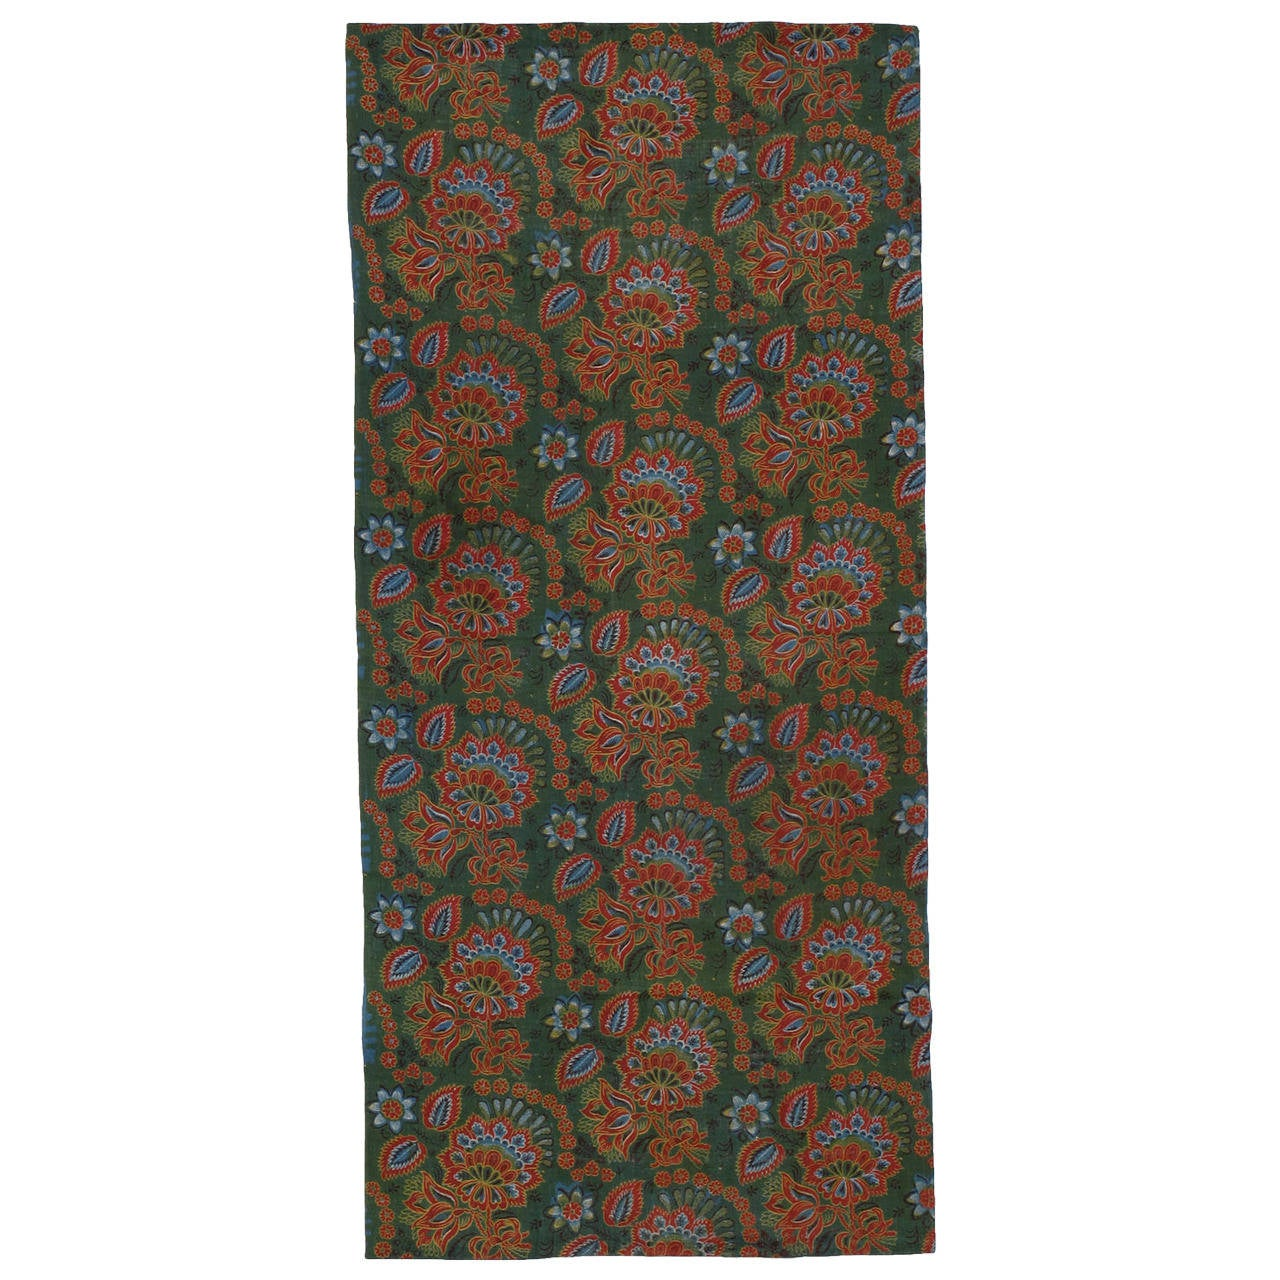 Antique Russian Fabric Panel